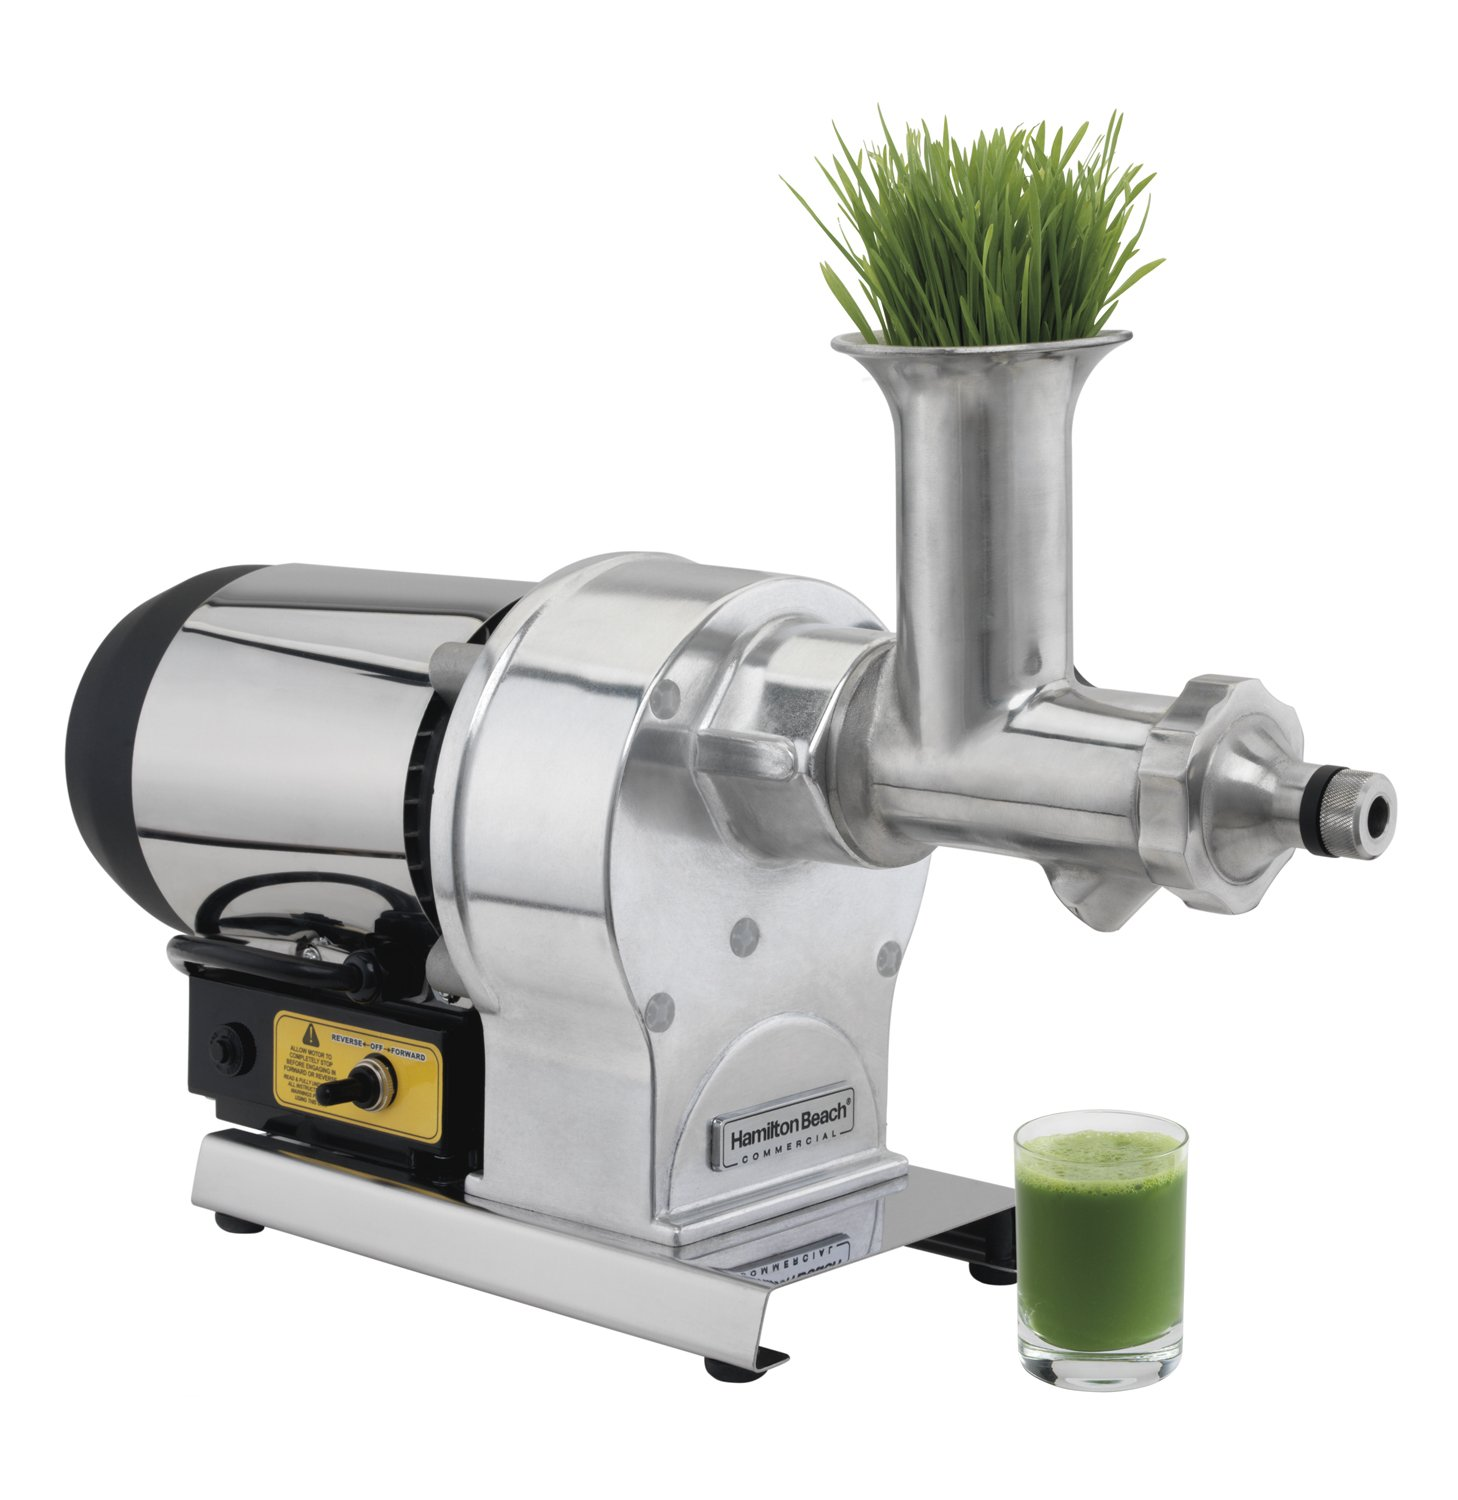 "Hamilton Beach Commercial HWG800 Wheatgrass Juicer, 12"" Height, 23.03"" Width, 7.09"" Length, Stainless Steel"